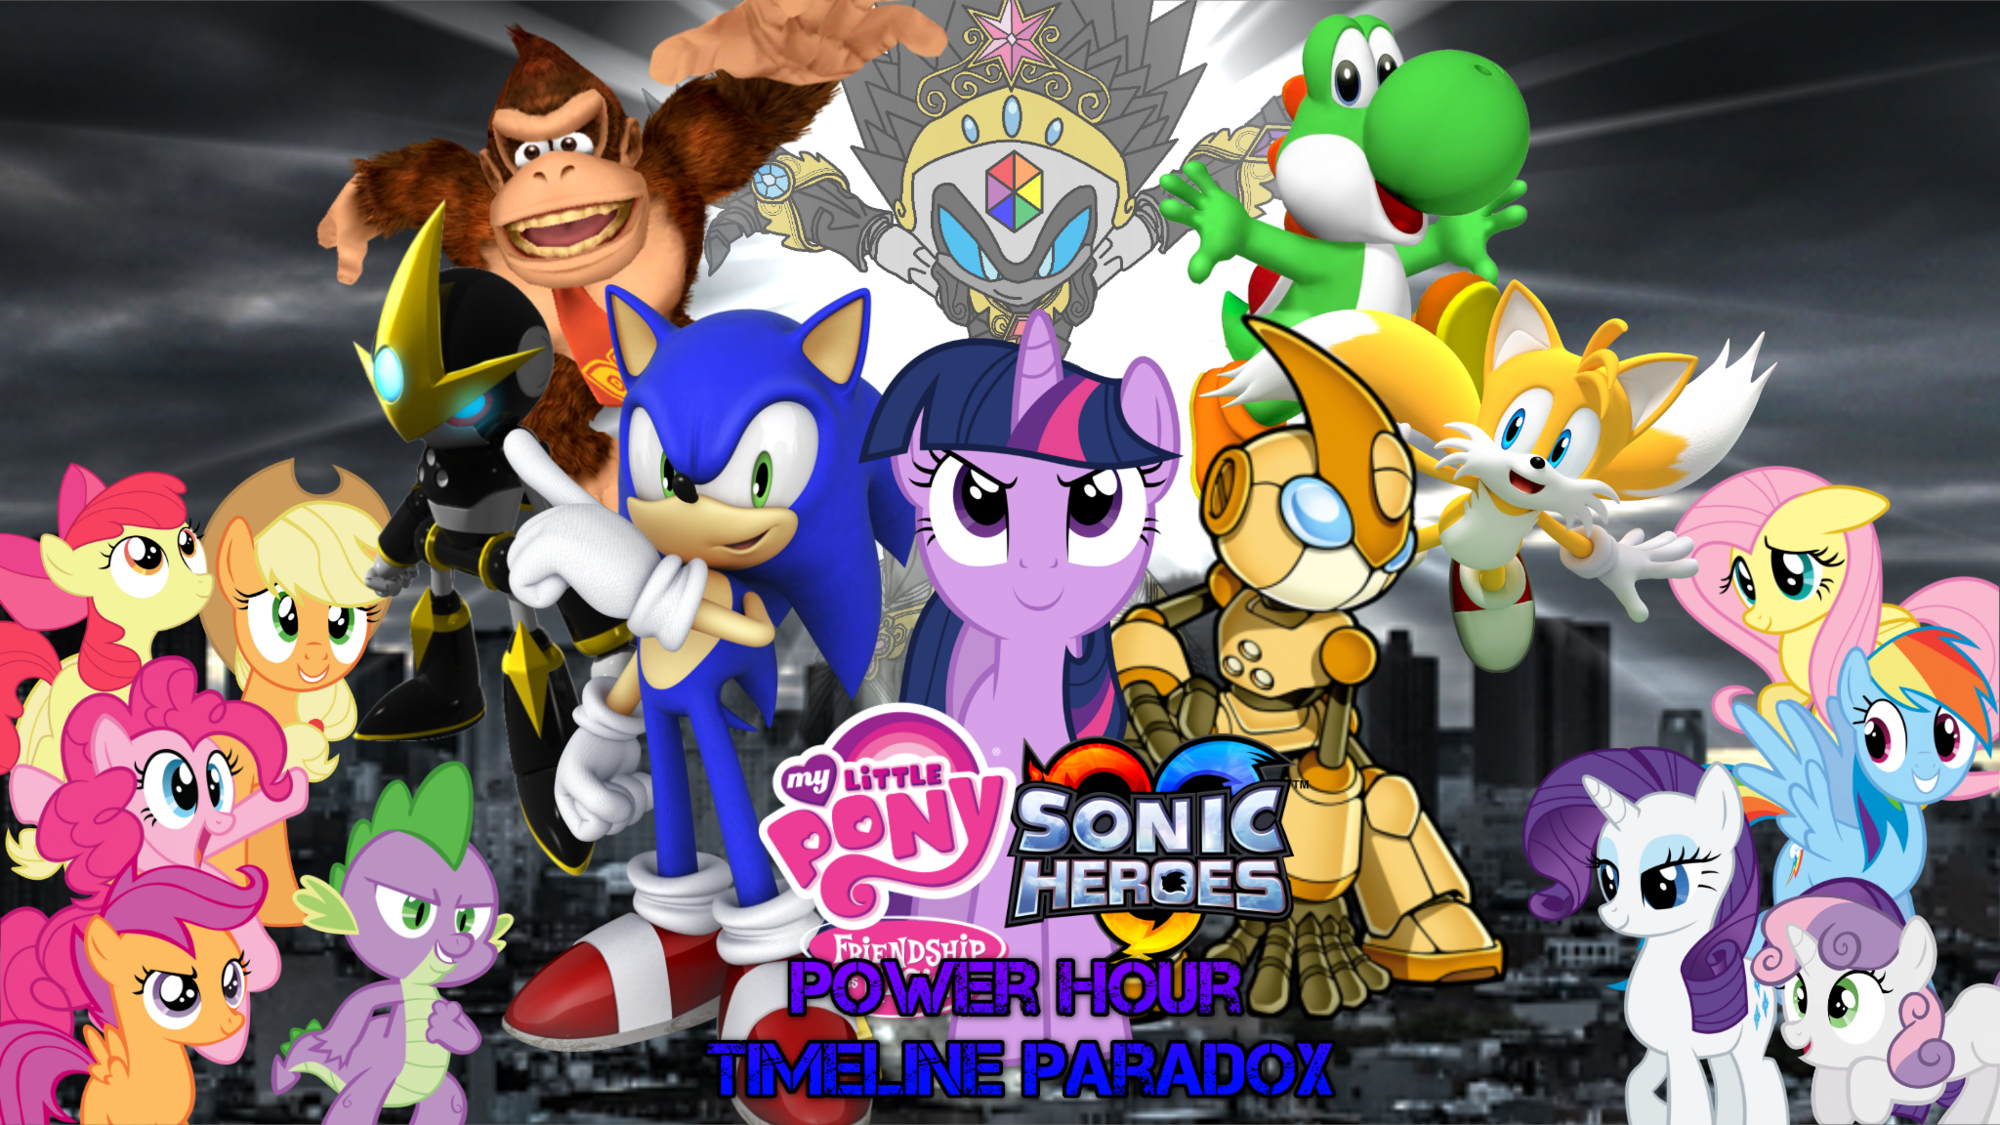 My Little Pony Sonic Heroes Power Hour Timeline Paradox